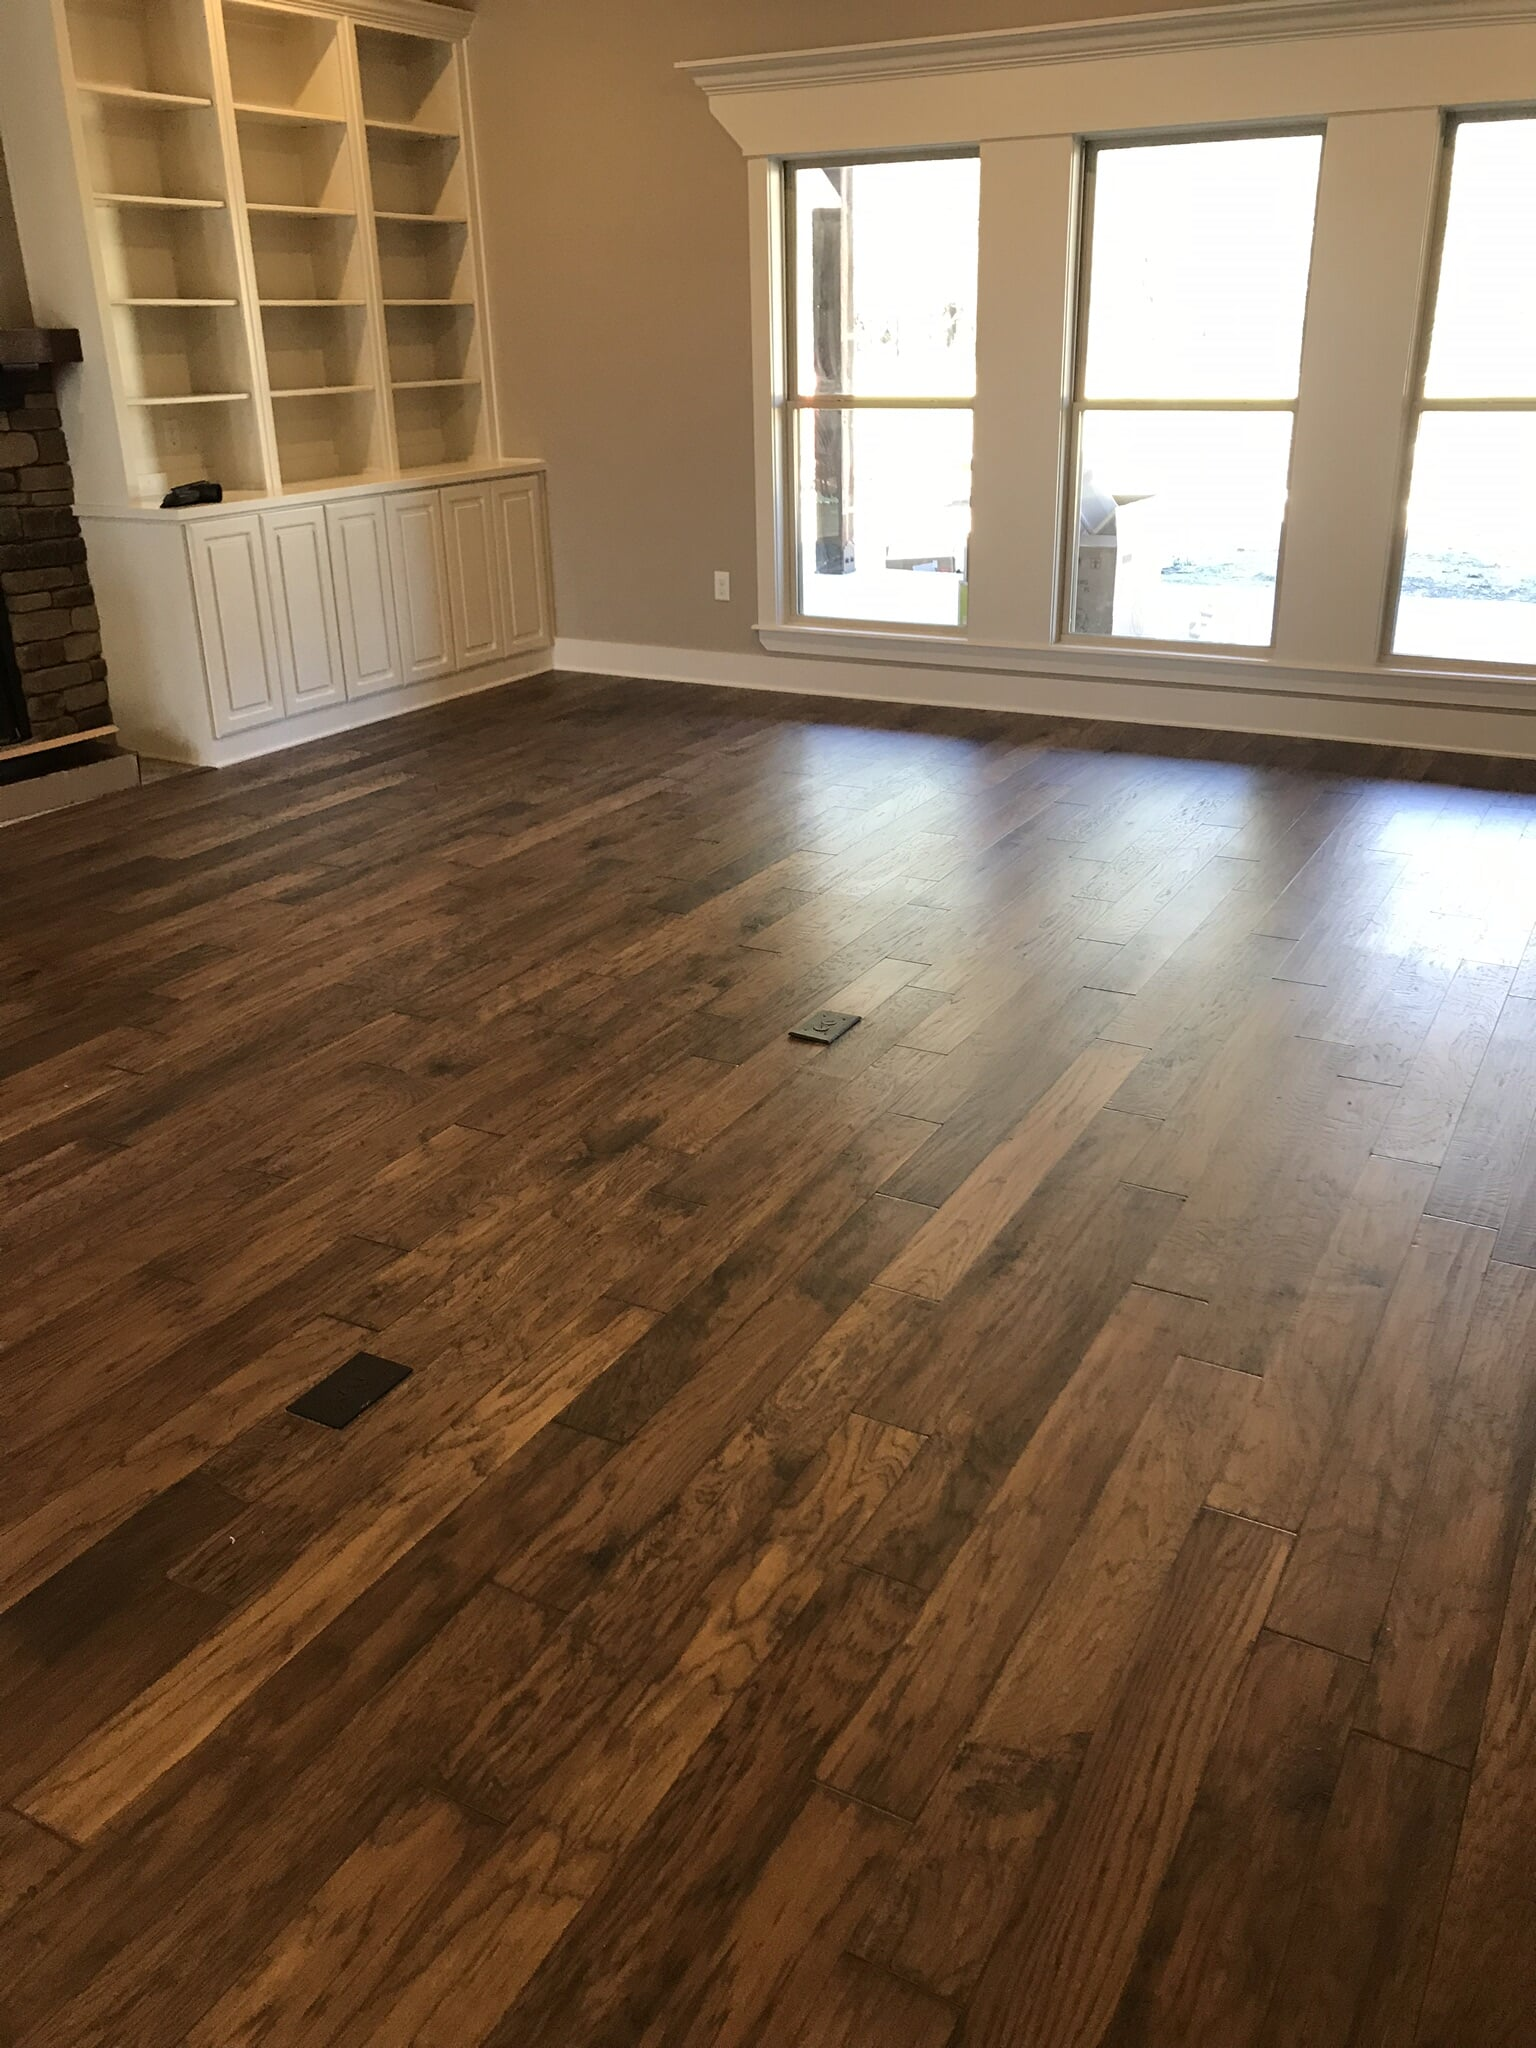 hardwood from Roop's Carpet in Beebe, AR